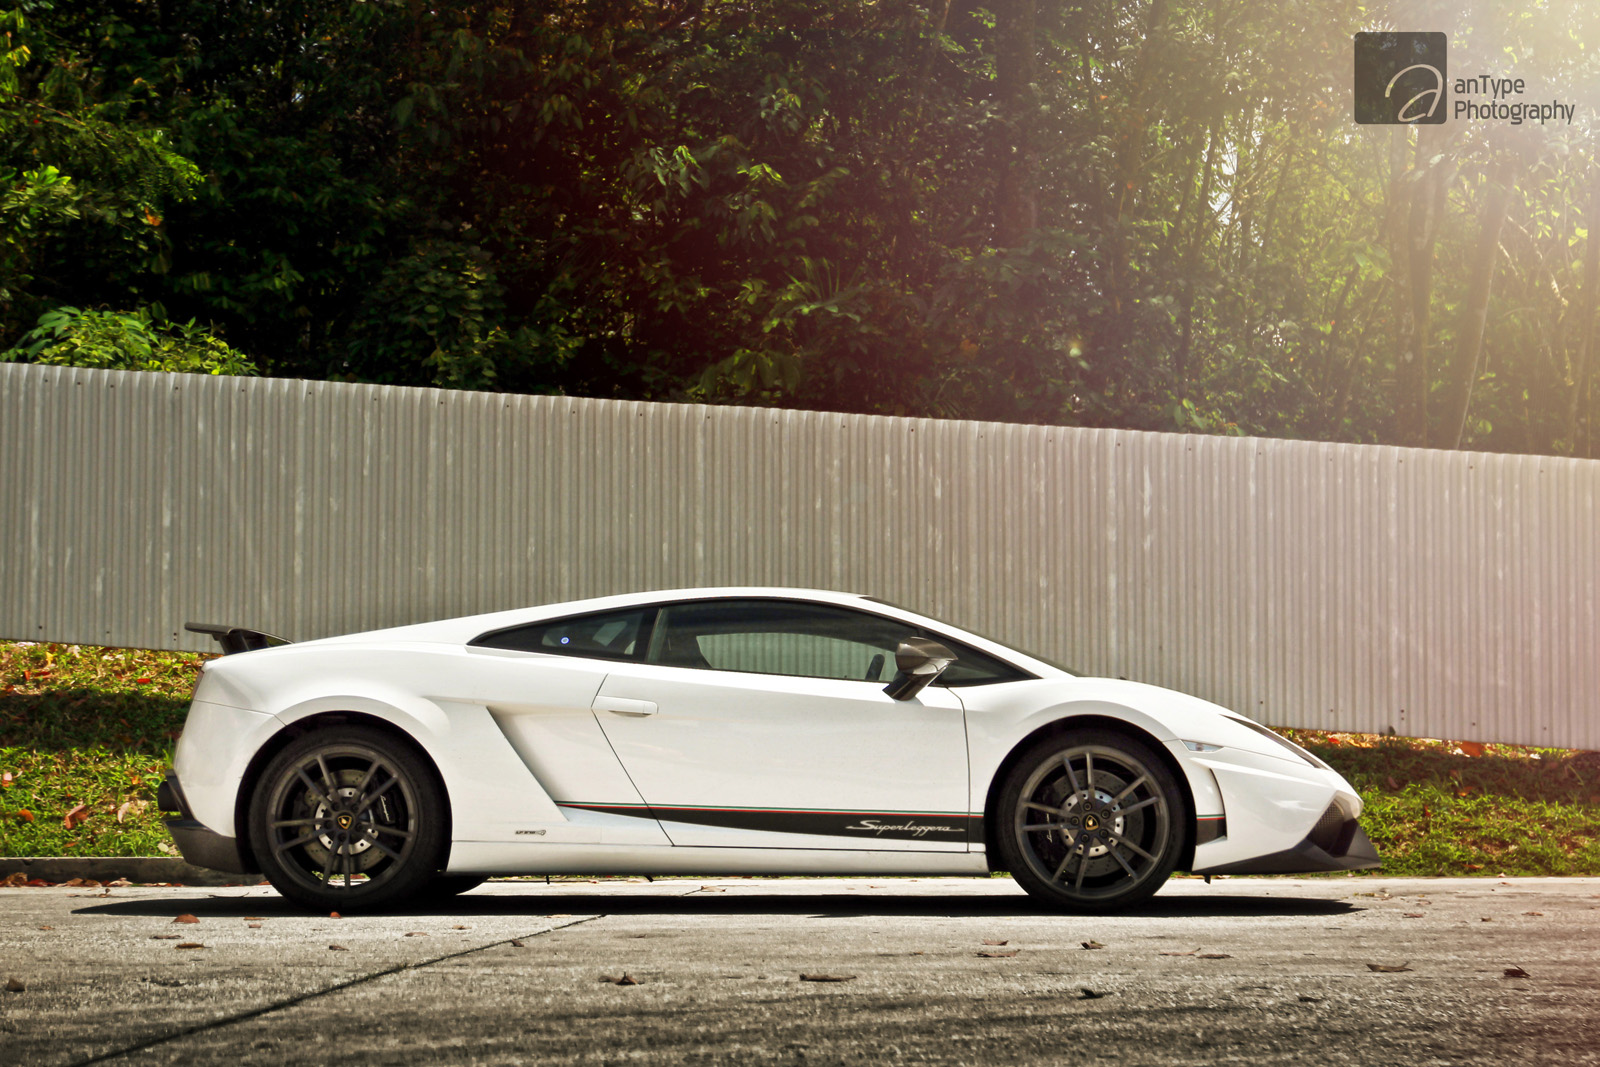 Photo Of The Day: Lamborghini Gallardo LP570-4 ...